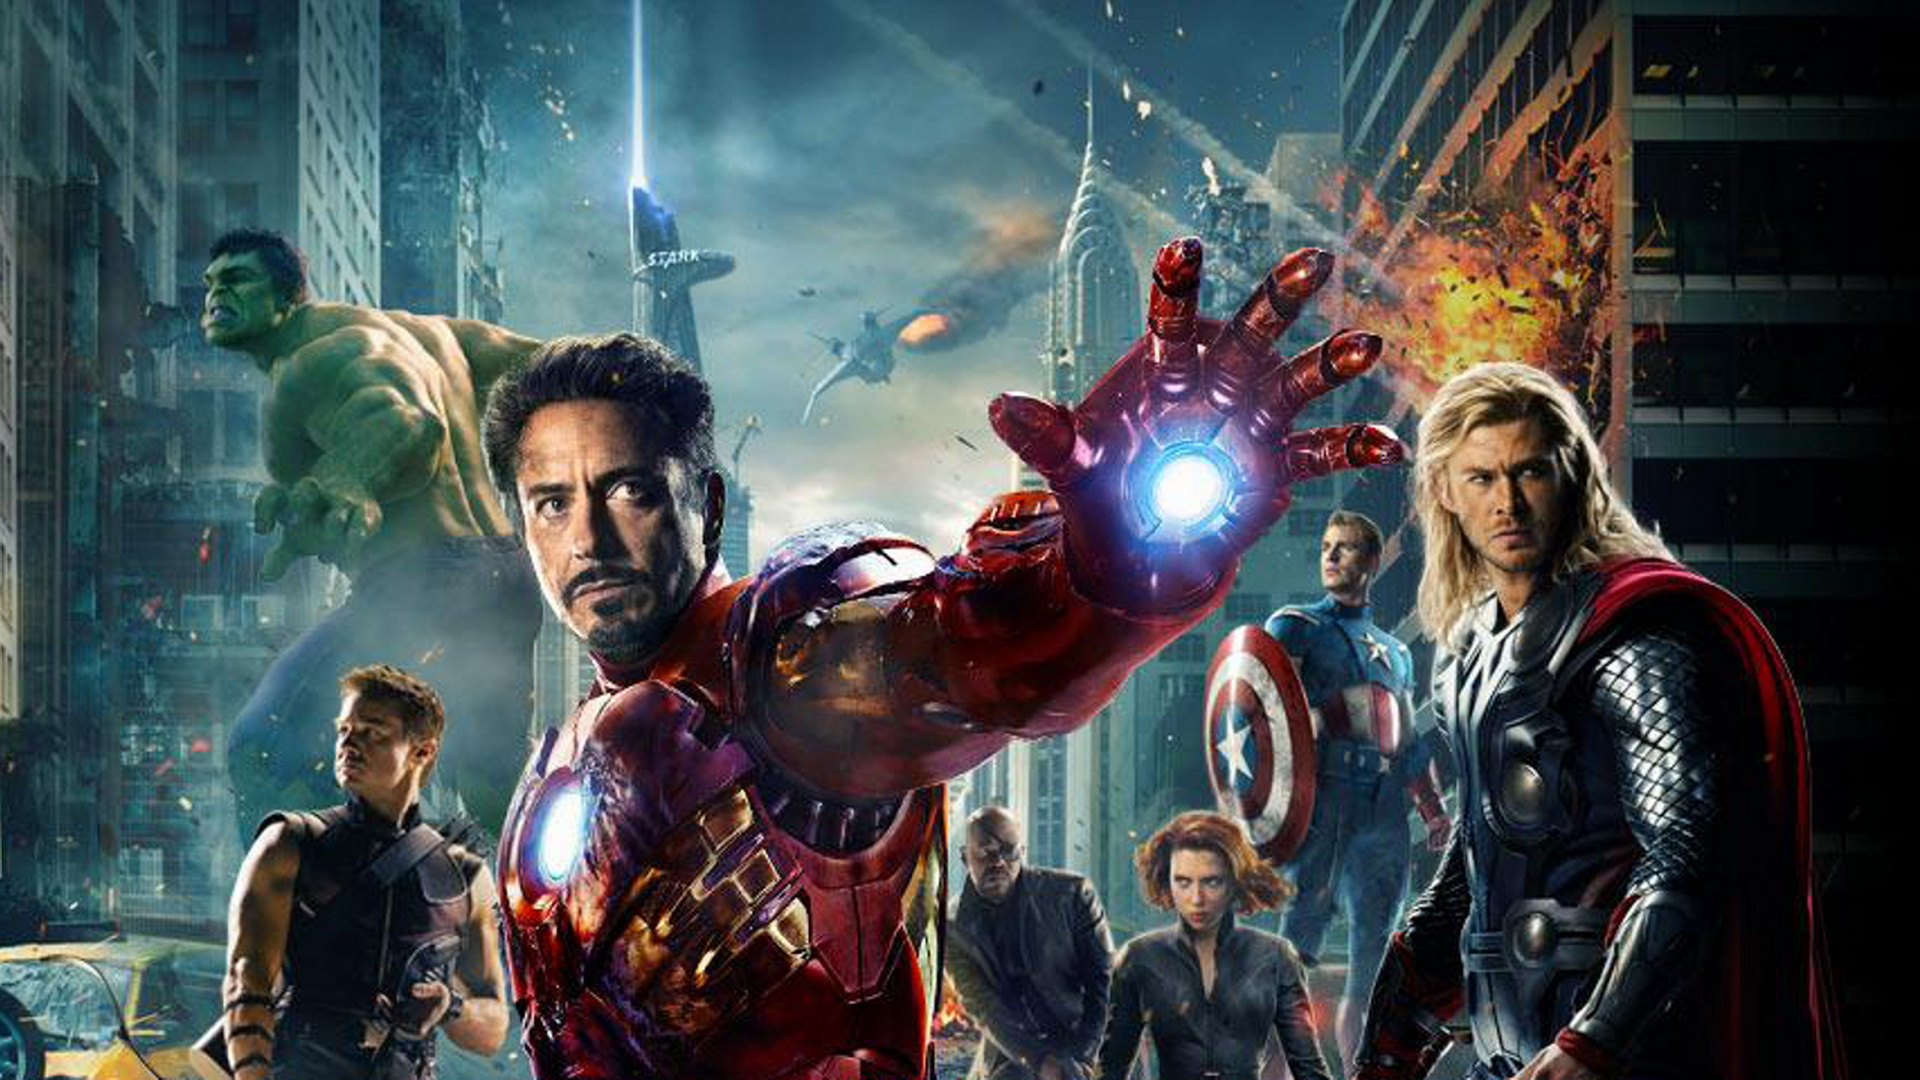 the avengers movie review. Black Bedroom Furniture Sets. Home Design Ideas